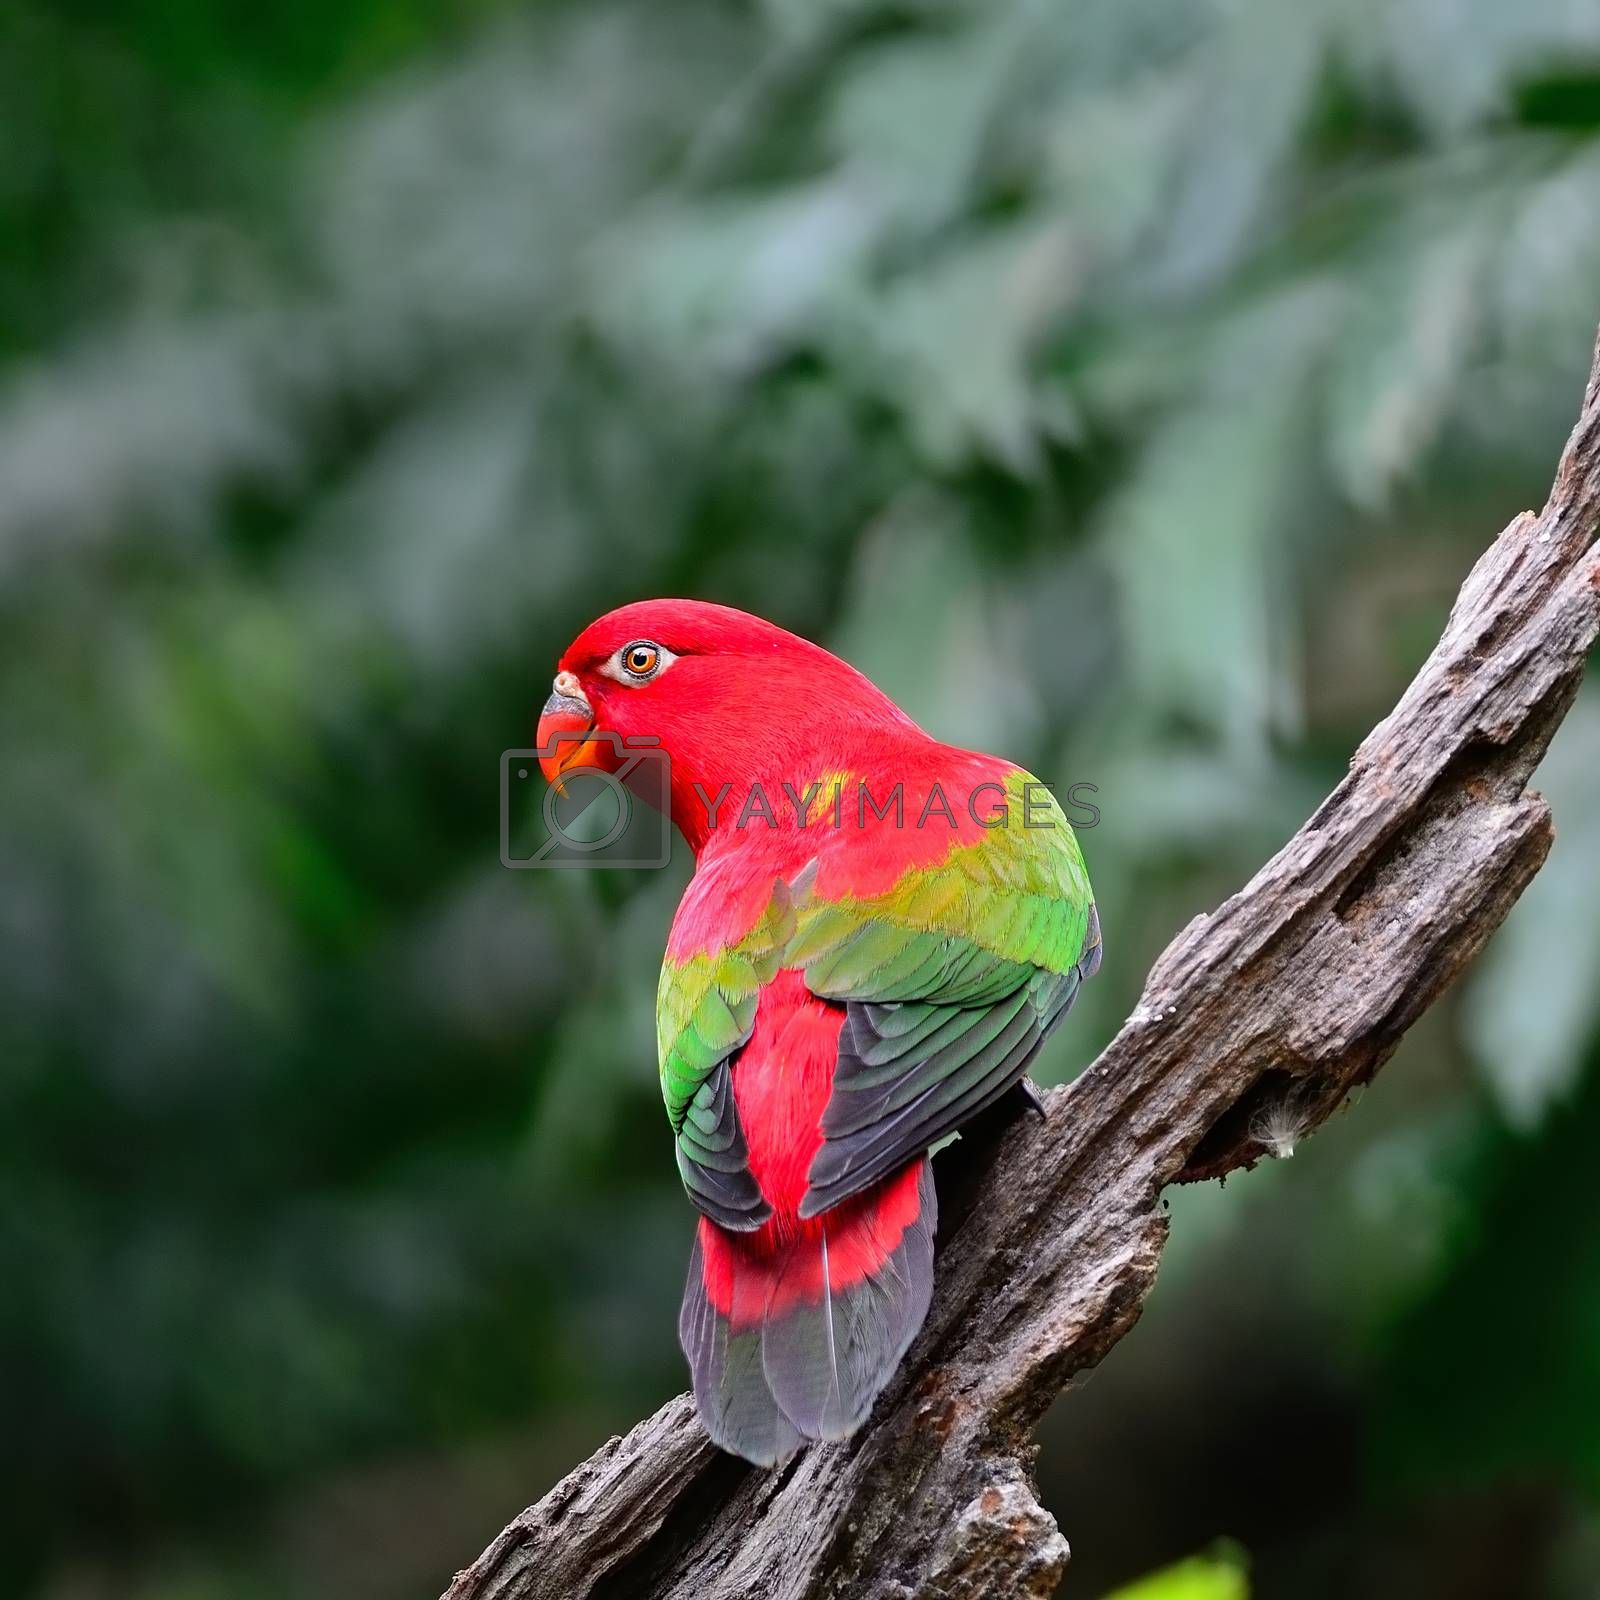 Royalty free image of Chattering Lory by panuruangjan